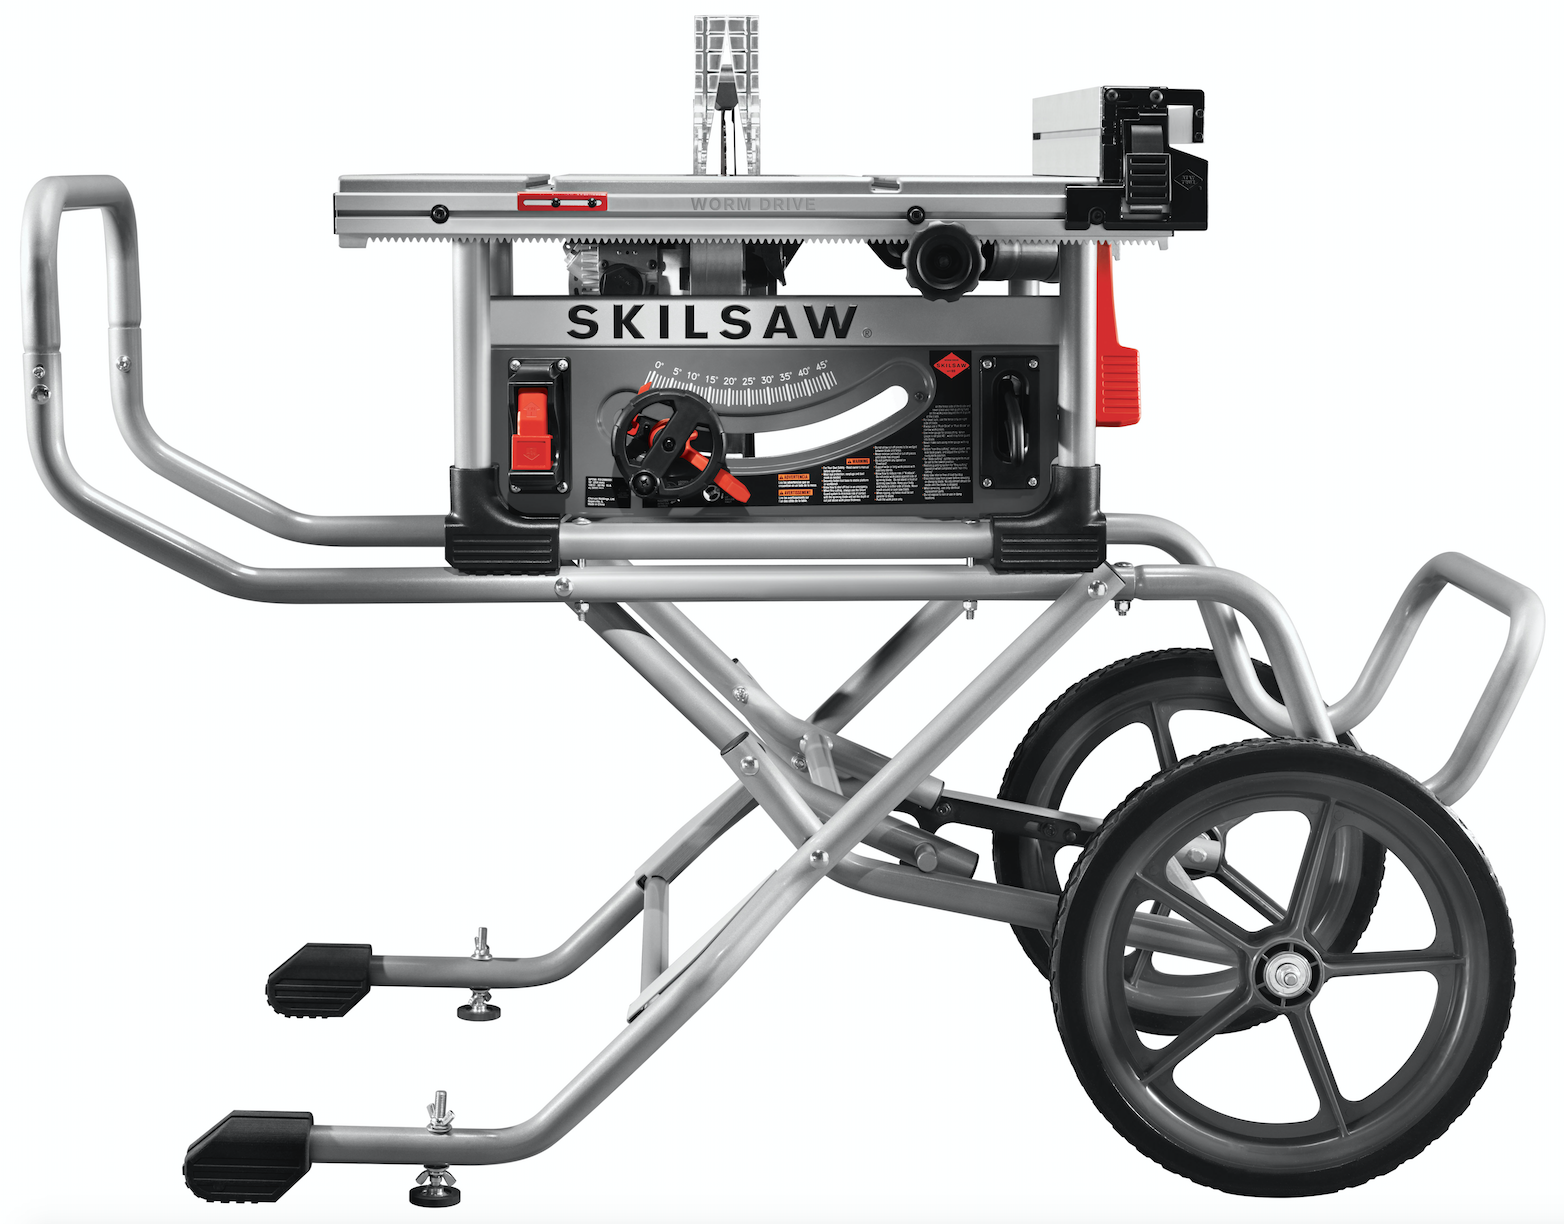 Skilsaw 10 inch heavy duty worm drive table saw for 10 inch skilsaw table saw